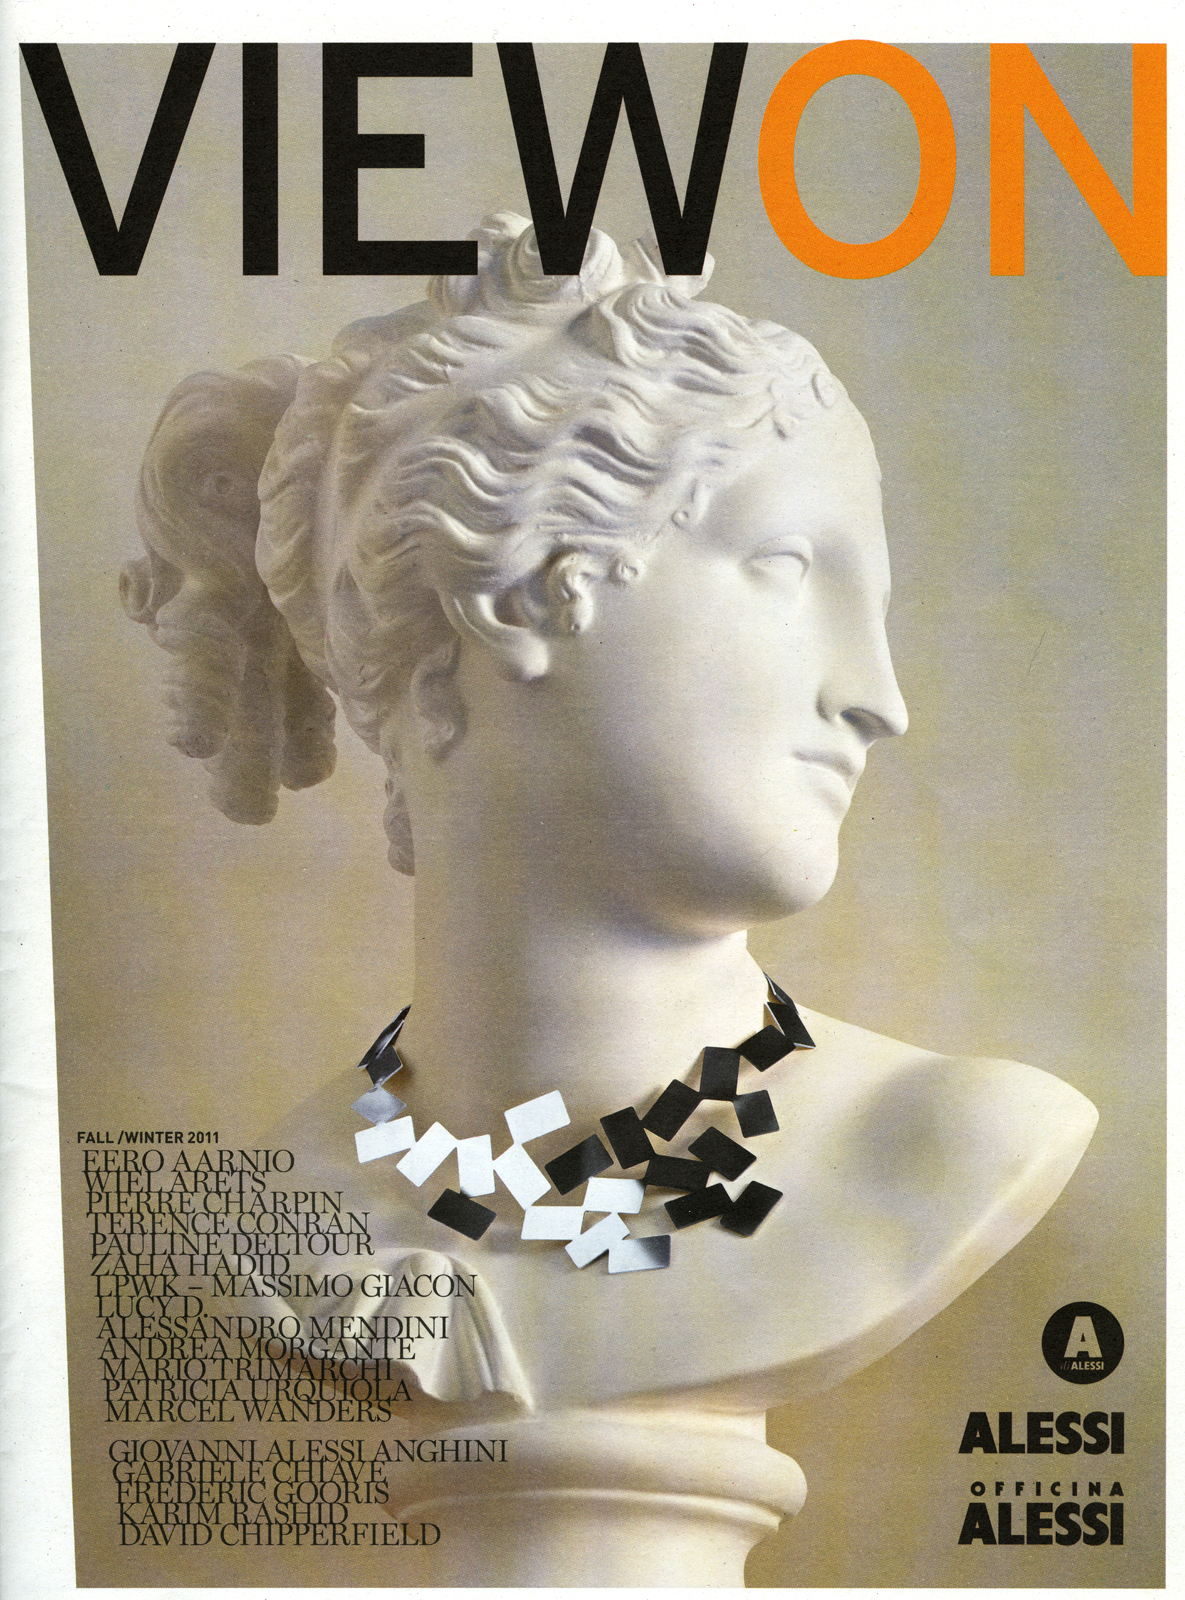 """View on"" f/w 2011  Alessi Editions, Verbania, Italy"